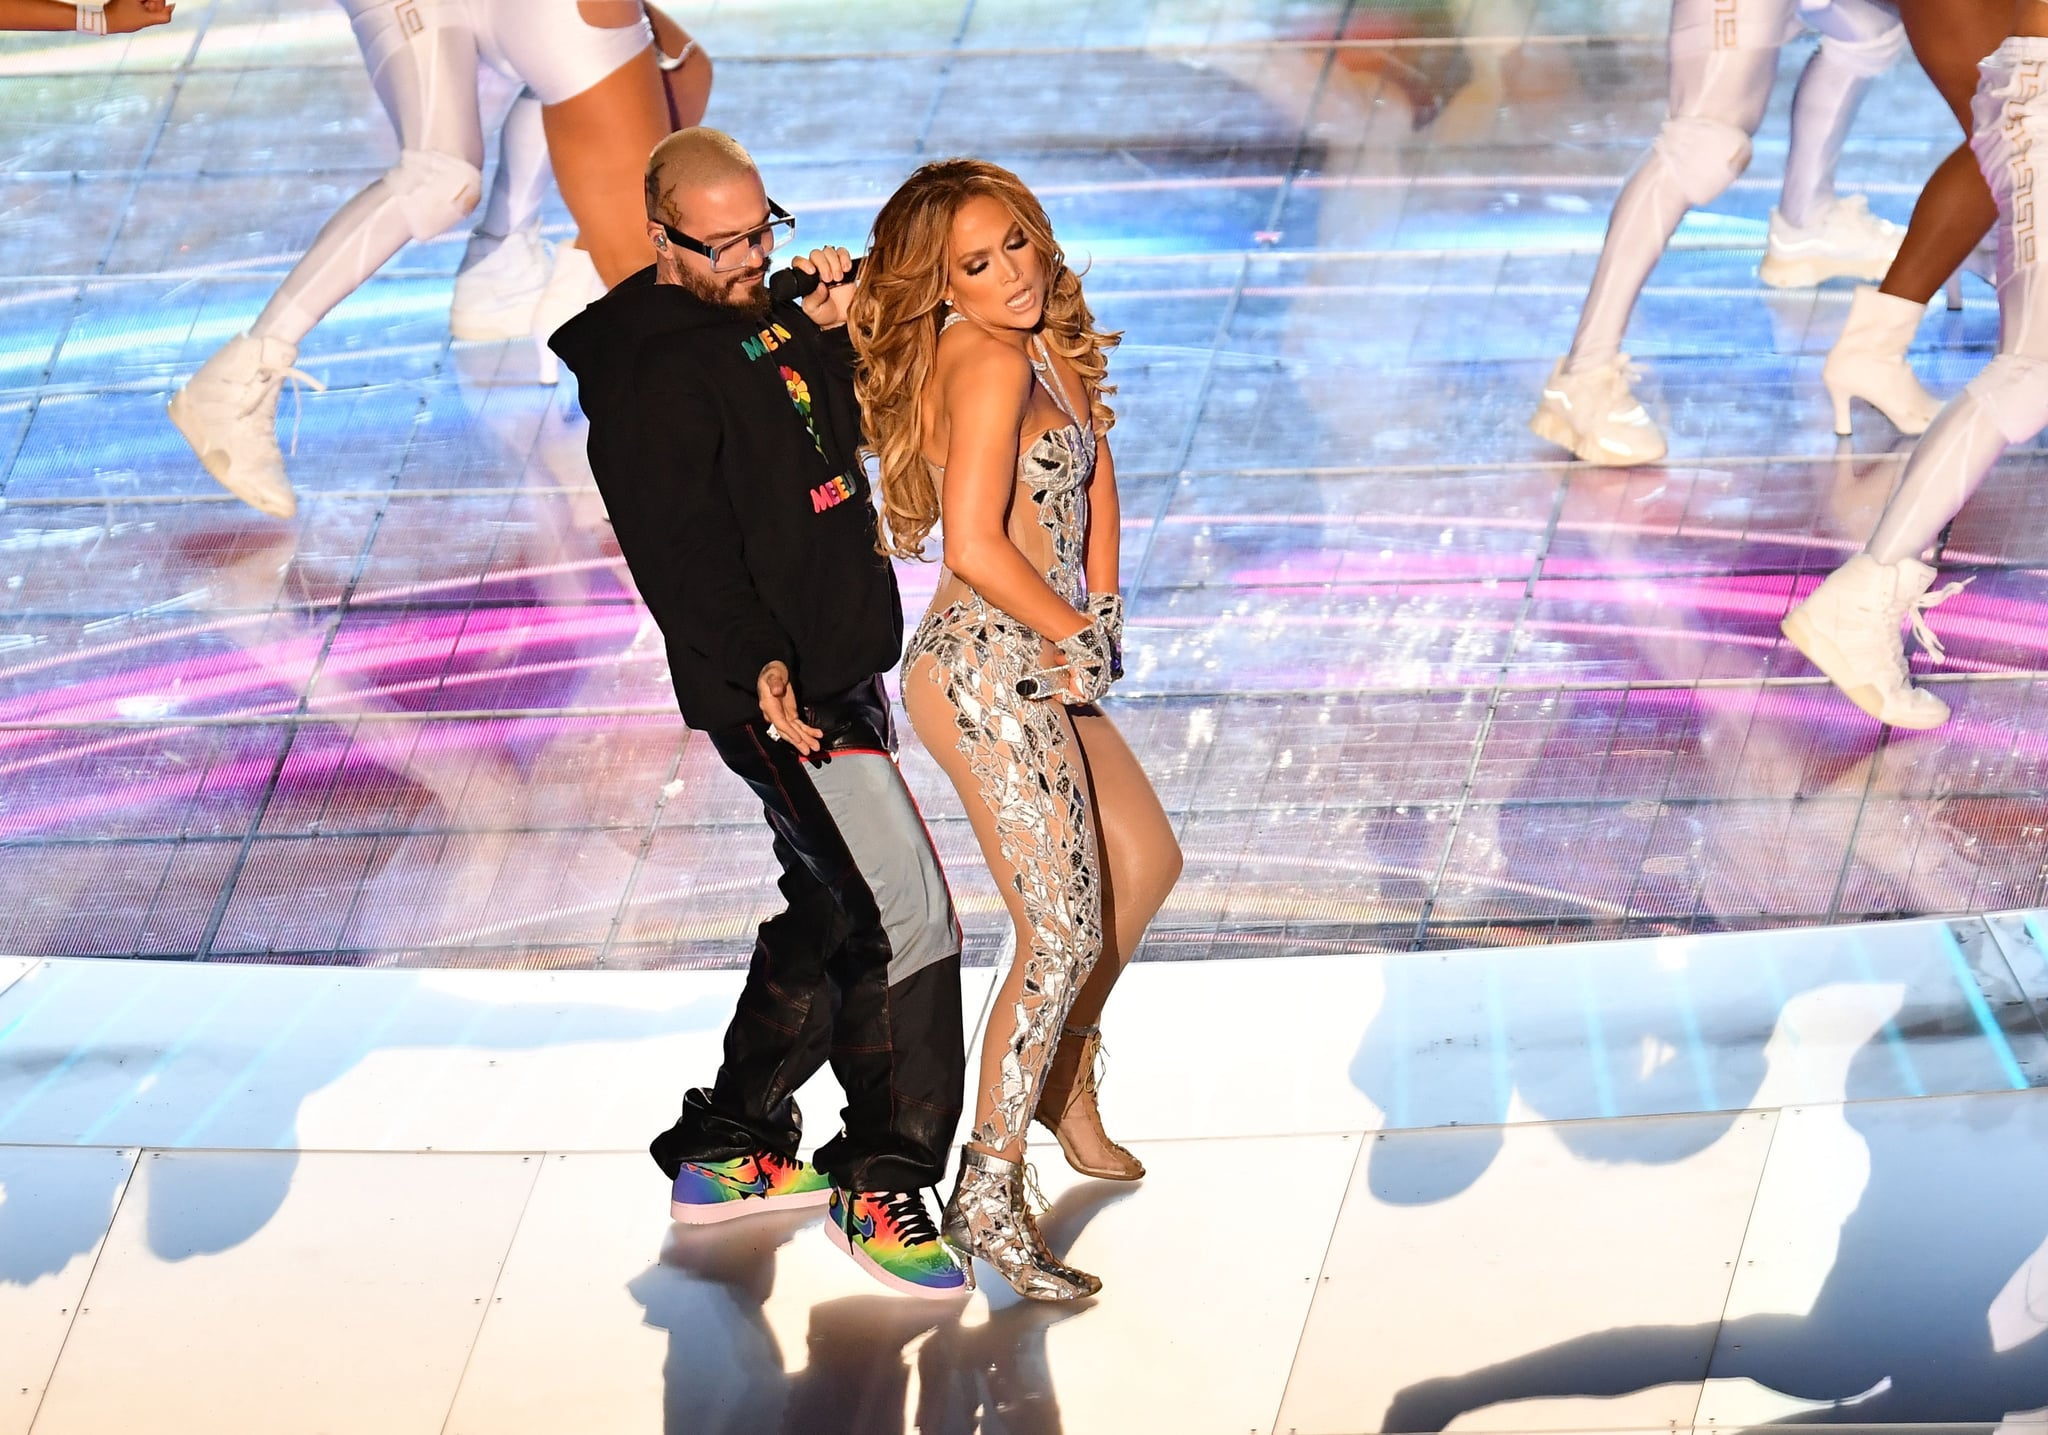 US singer Jennifer Lopez and Colombian singer J Balvin perform during the halftime show of Super Bowl LIV between the Kansas City Chiefs and the San Francisco 49ers at Hard Rock Stadium in Miami Gardens, Florida, on February 2, 2020. (Photo by Angela Weiss / AFP) (Photo by ANGELA WEISS/AFP via Getty Images)